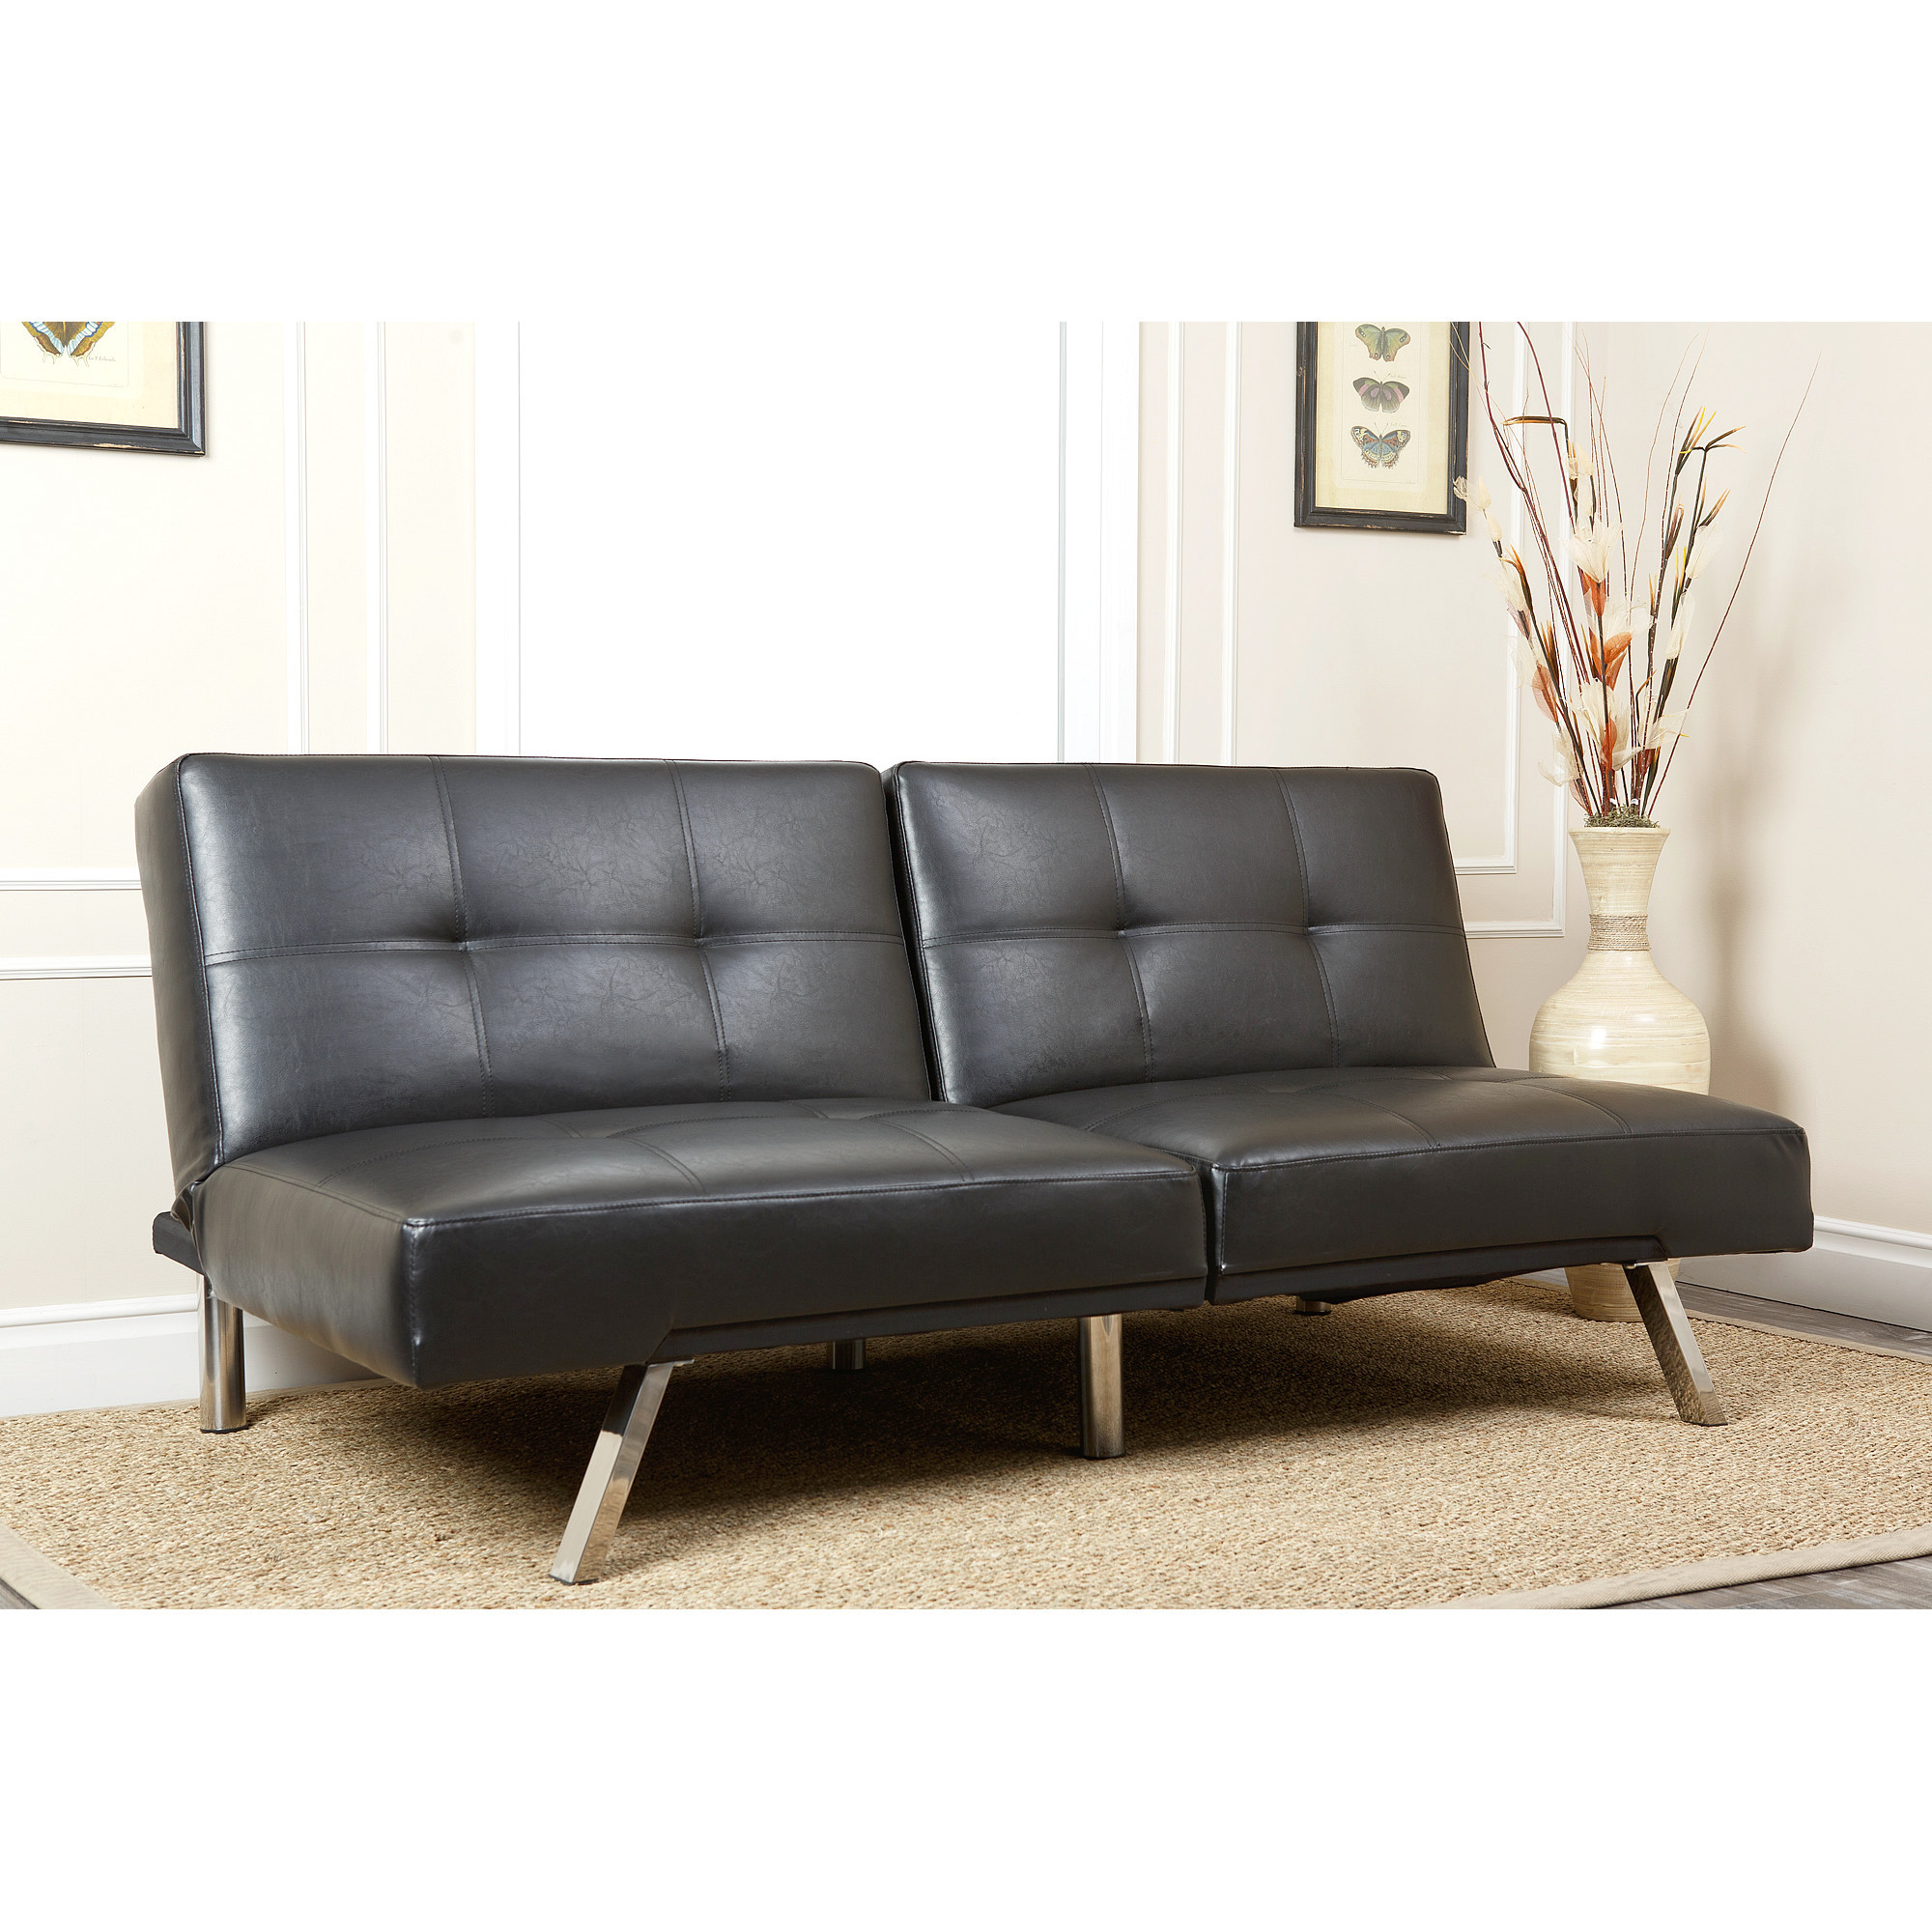 Best ideas about Sofa Sleeper Sectional . Save or Pin Abbyson Living Aspen Convertible Sleeper Sofa & Reviews Now.